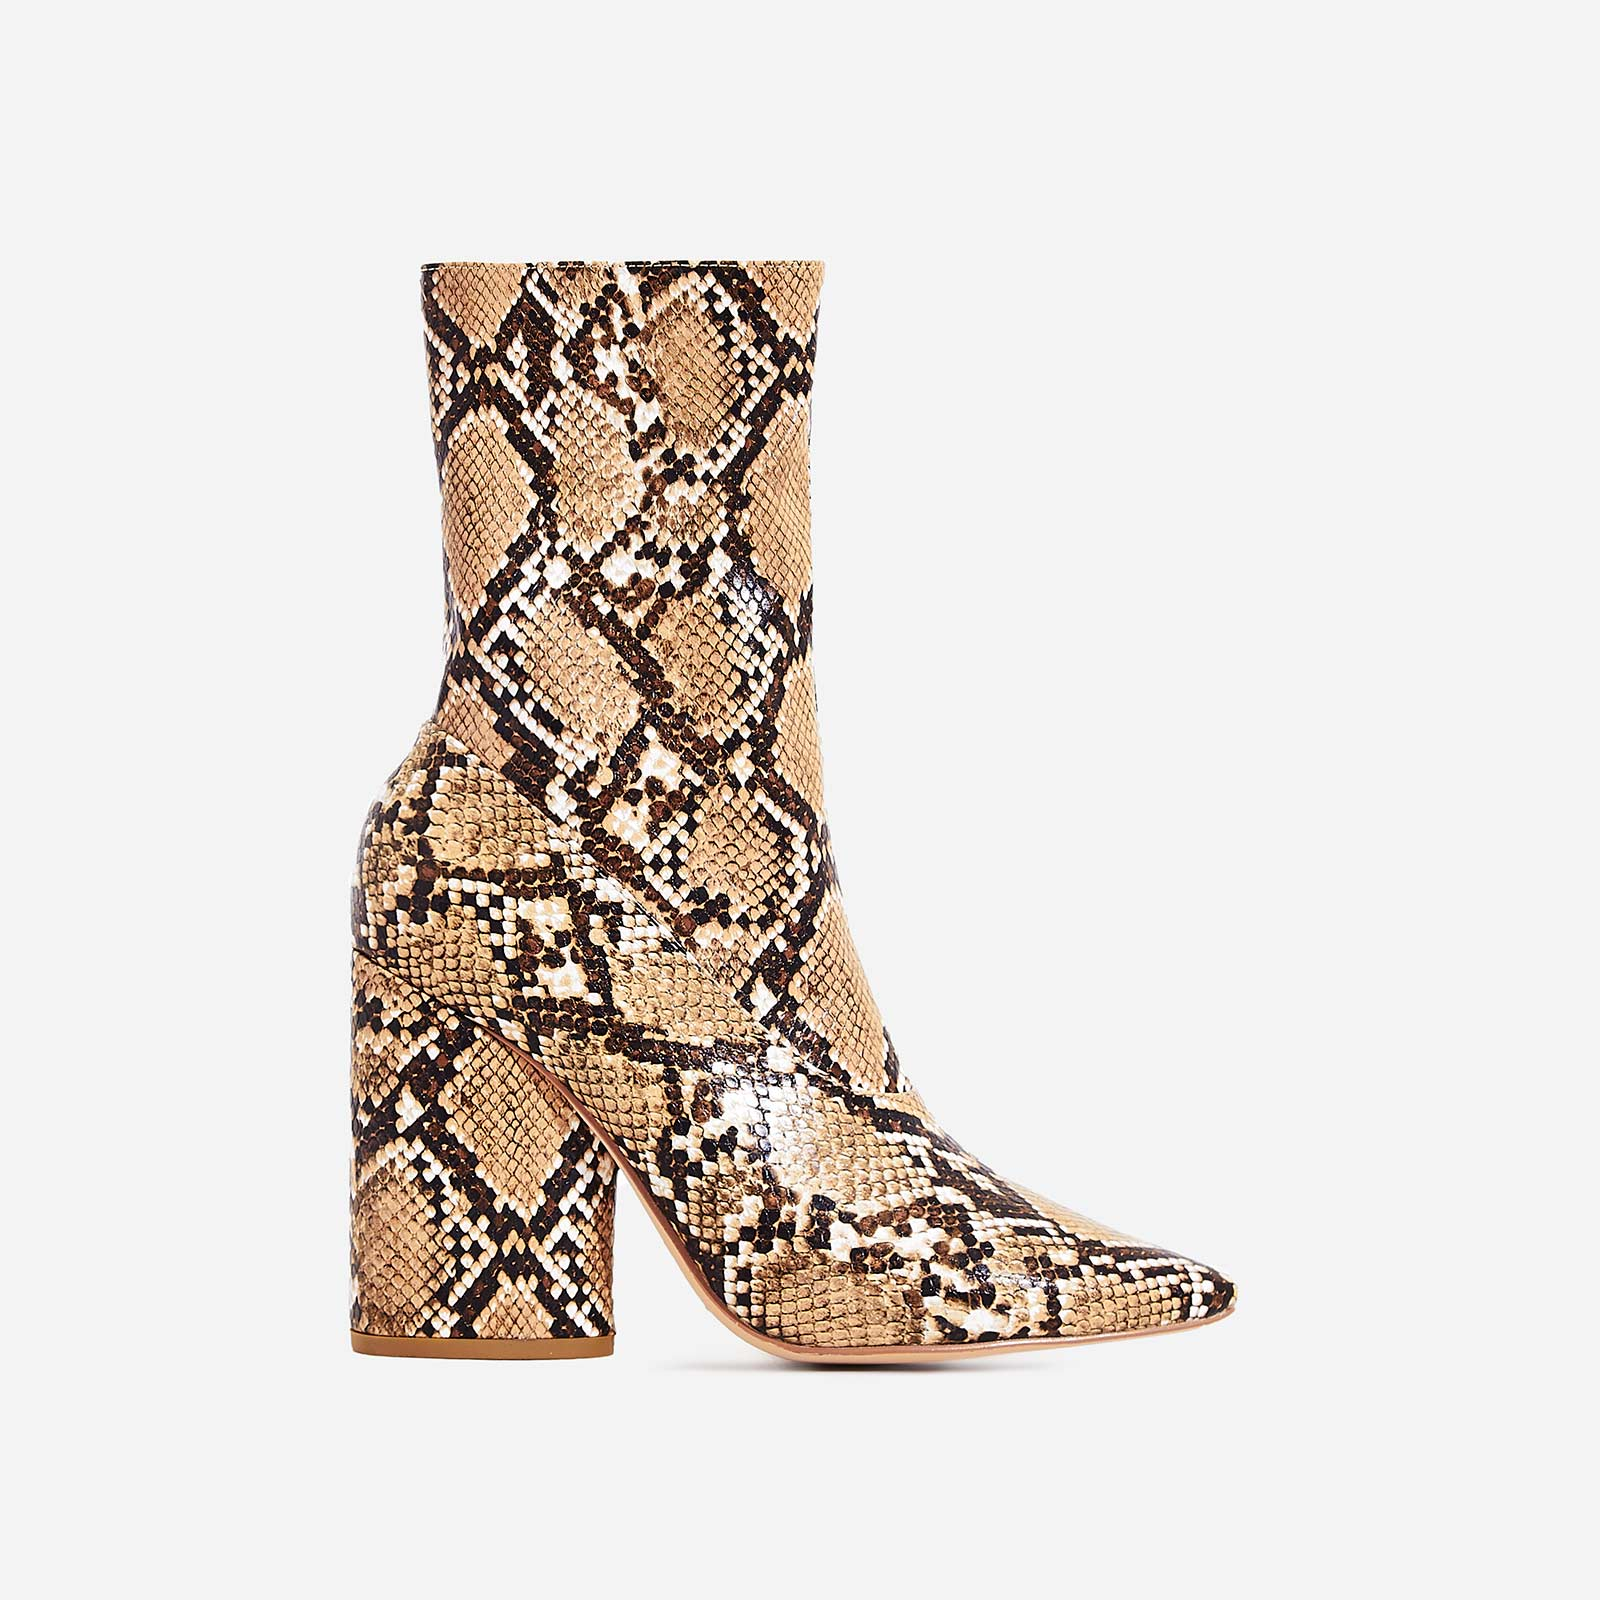 afb2dd3aa60 Ameera Block Heel Pointed Ankle Boot In Nude Snake Print Faux Leather